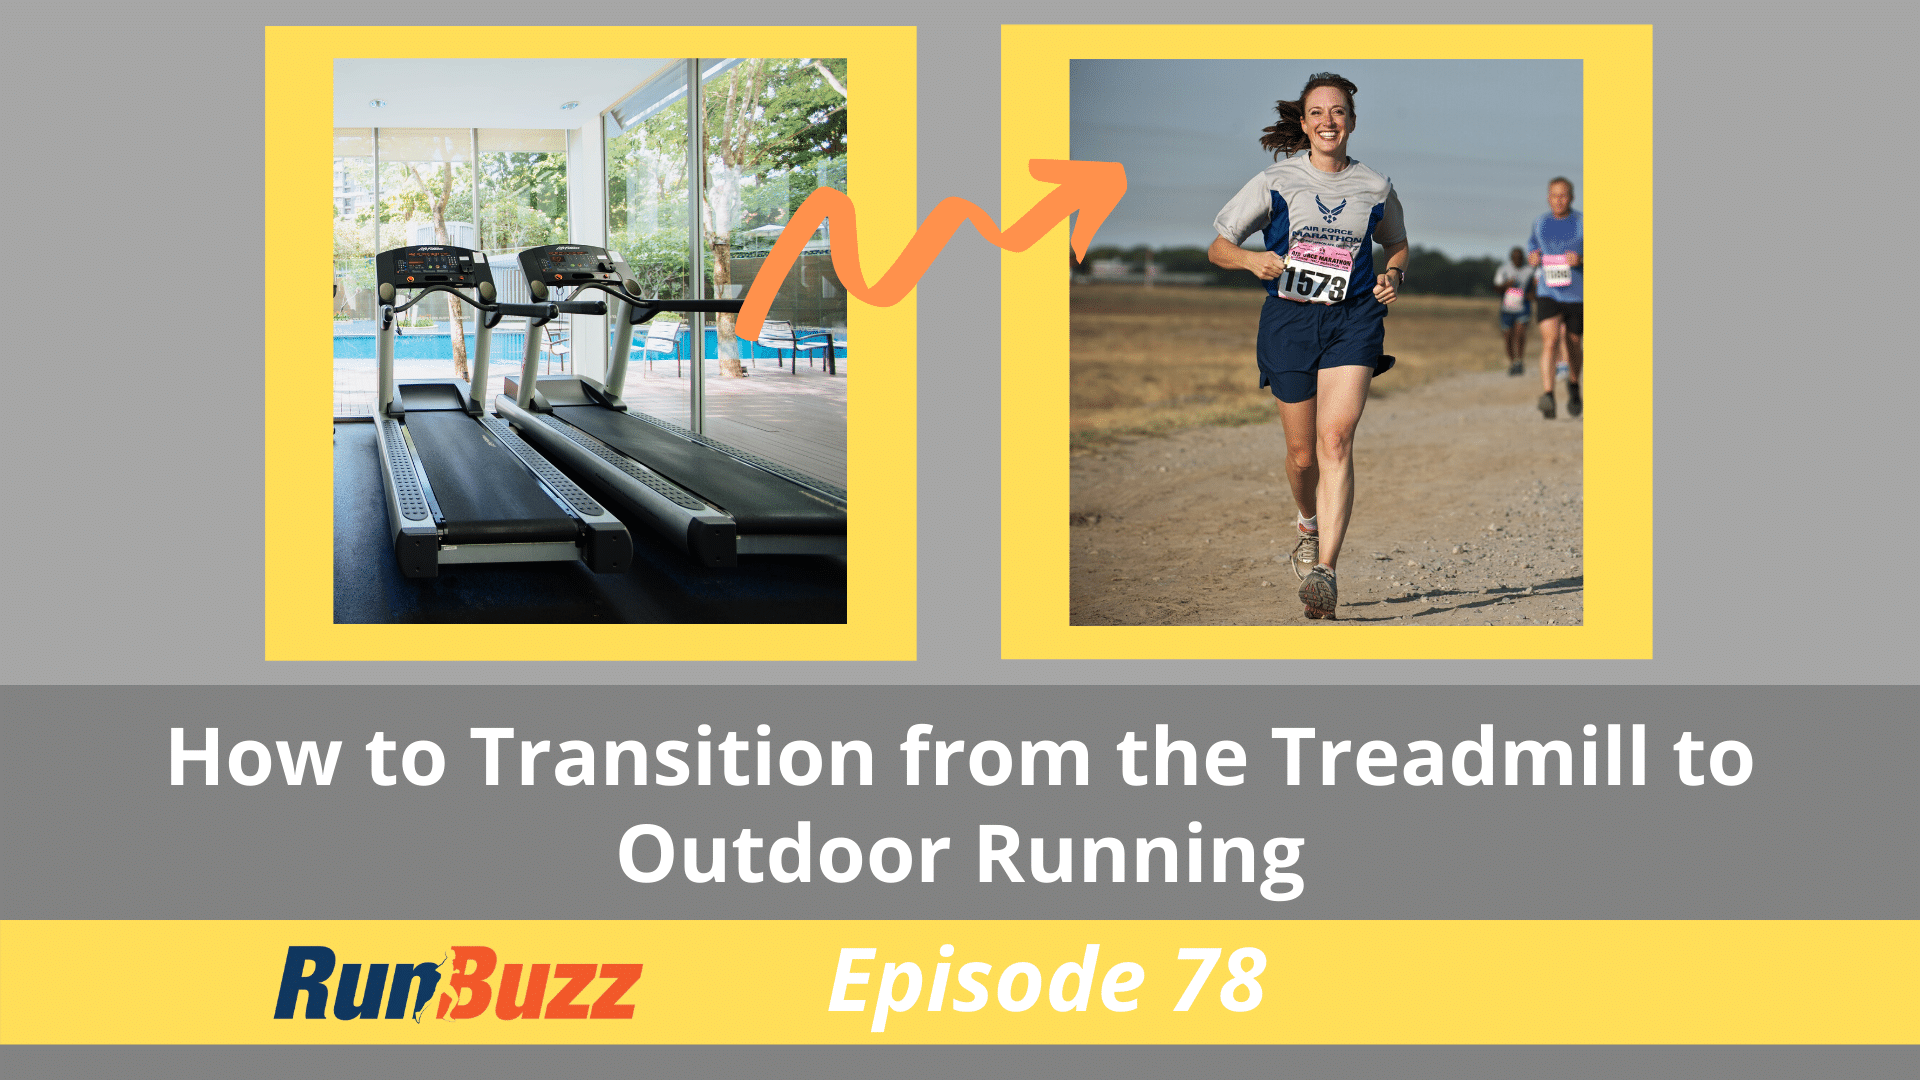 How-To-Transition-From-The-Treadmill-To-Outdoor-Running